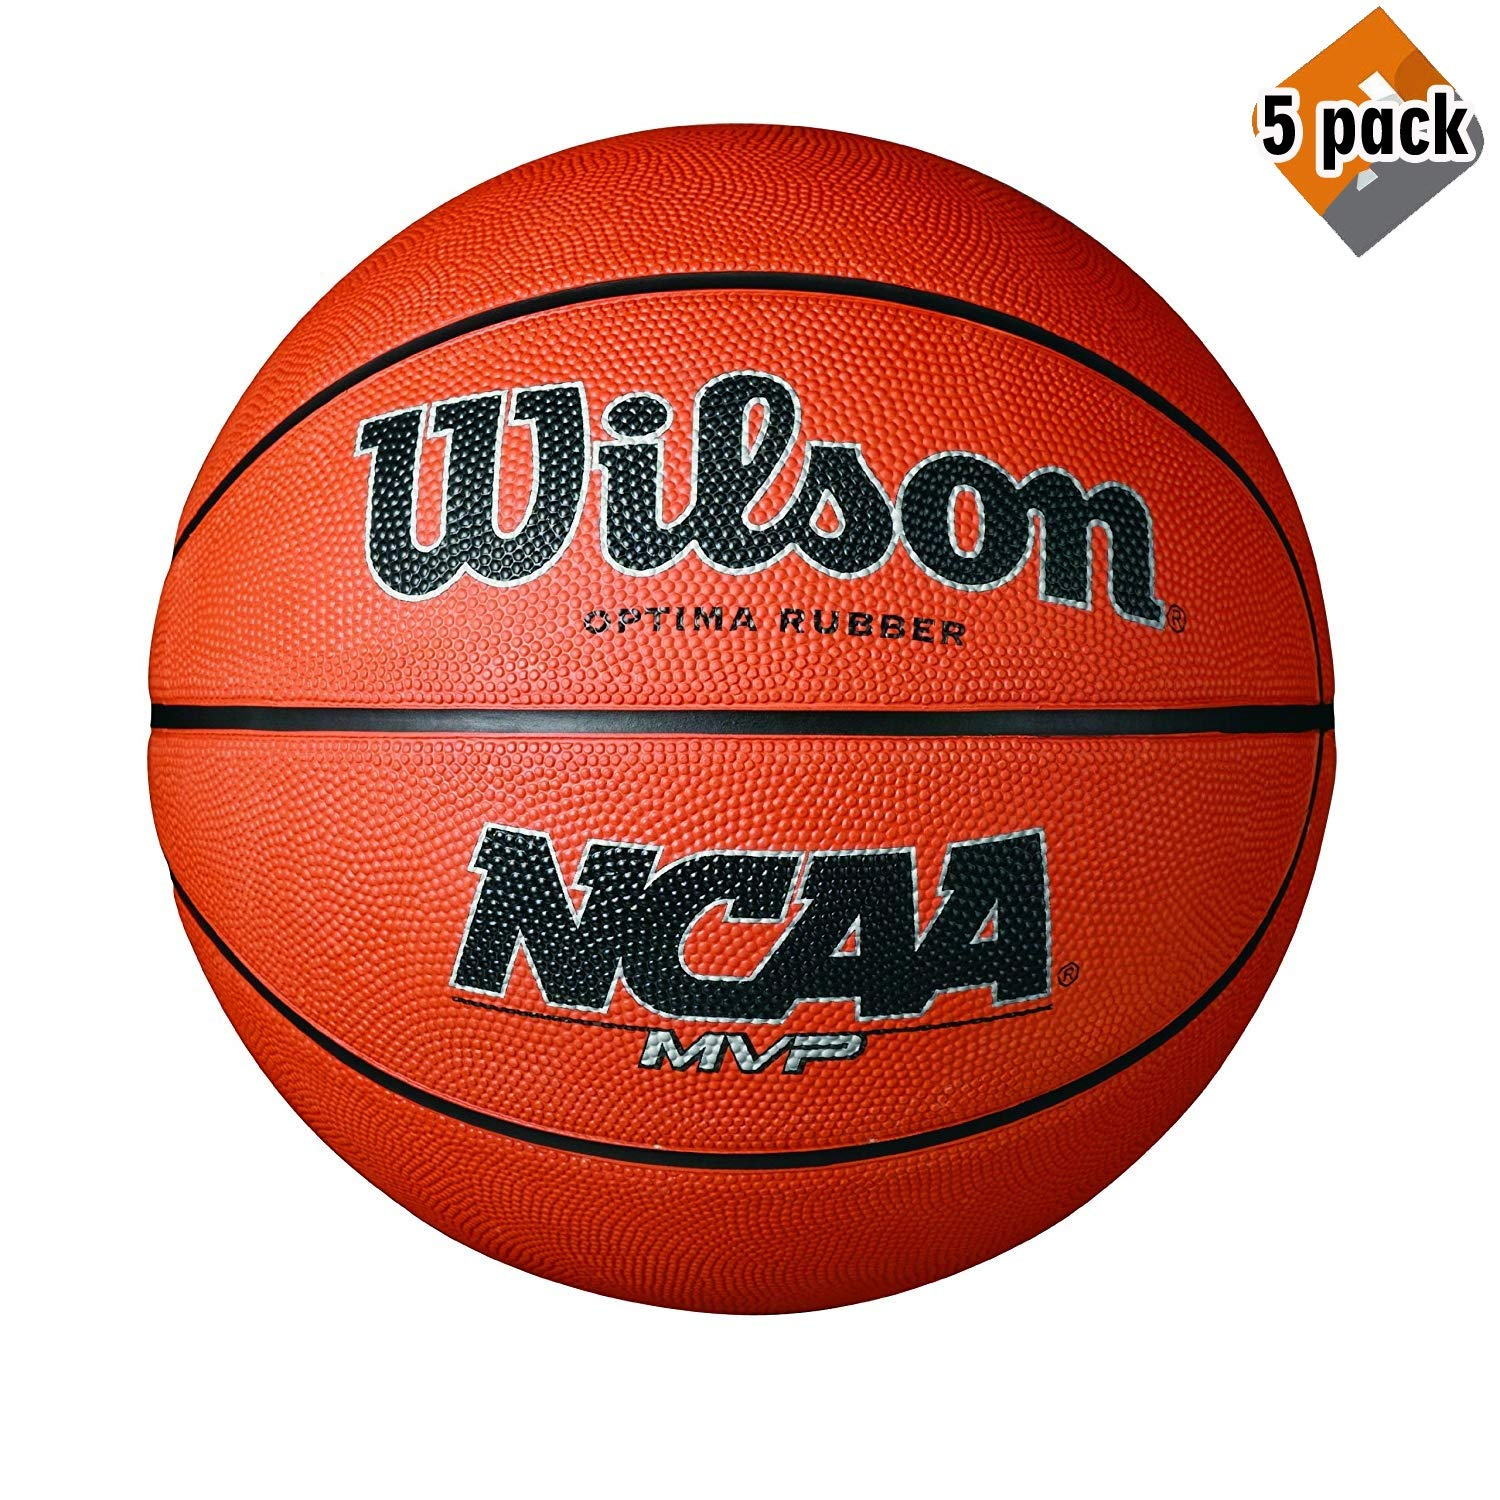 Wilson NCAA MVP Rubber Basketball, Official - 29.5'' (5 Pack)